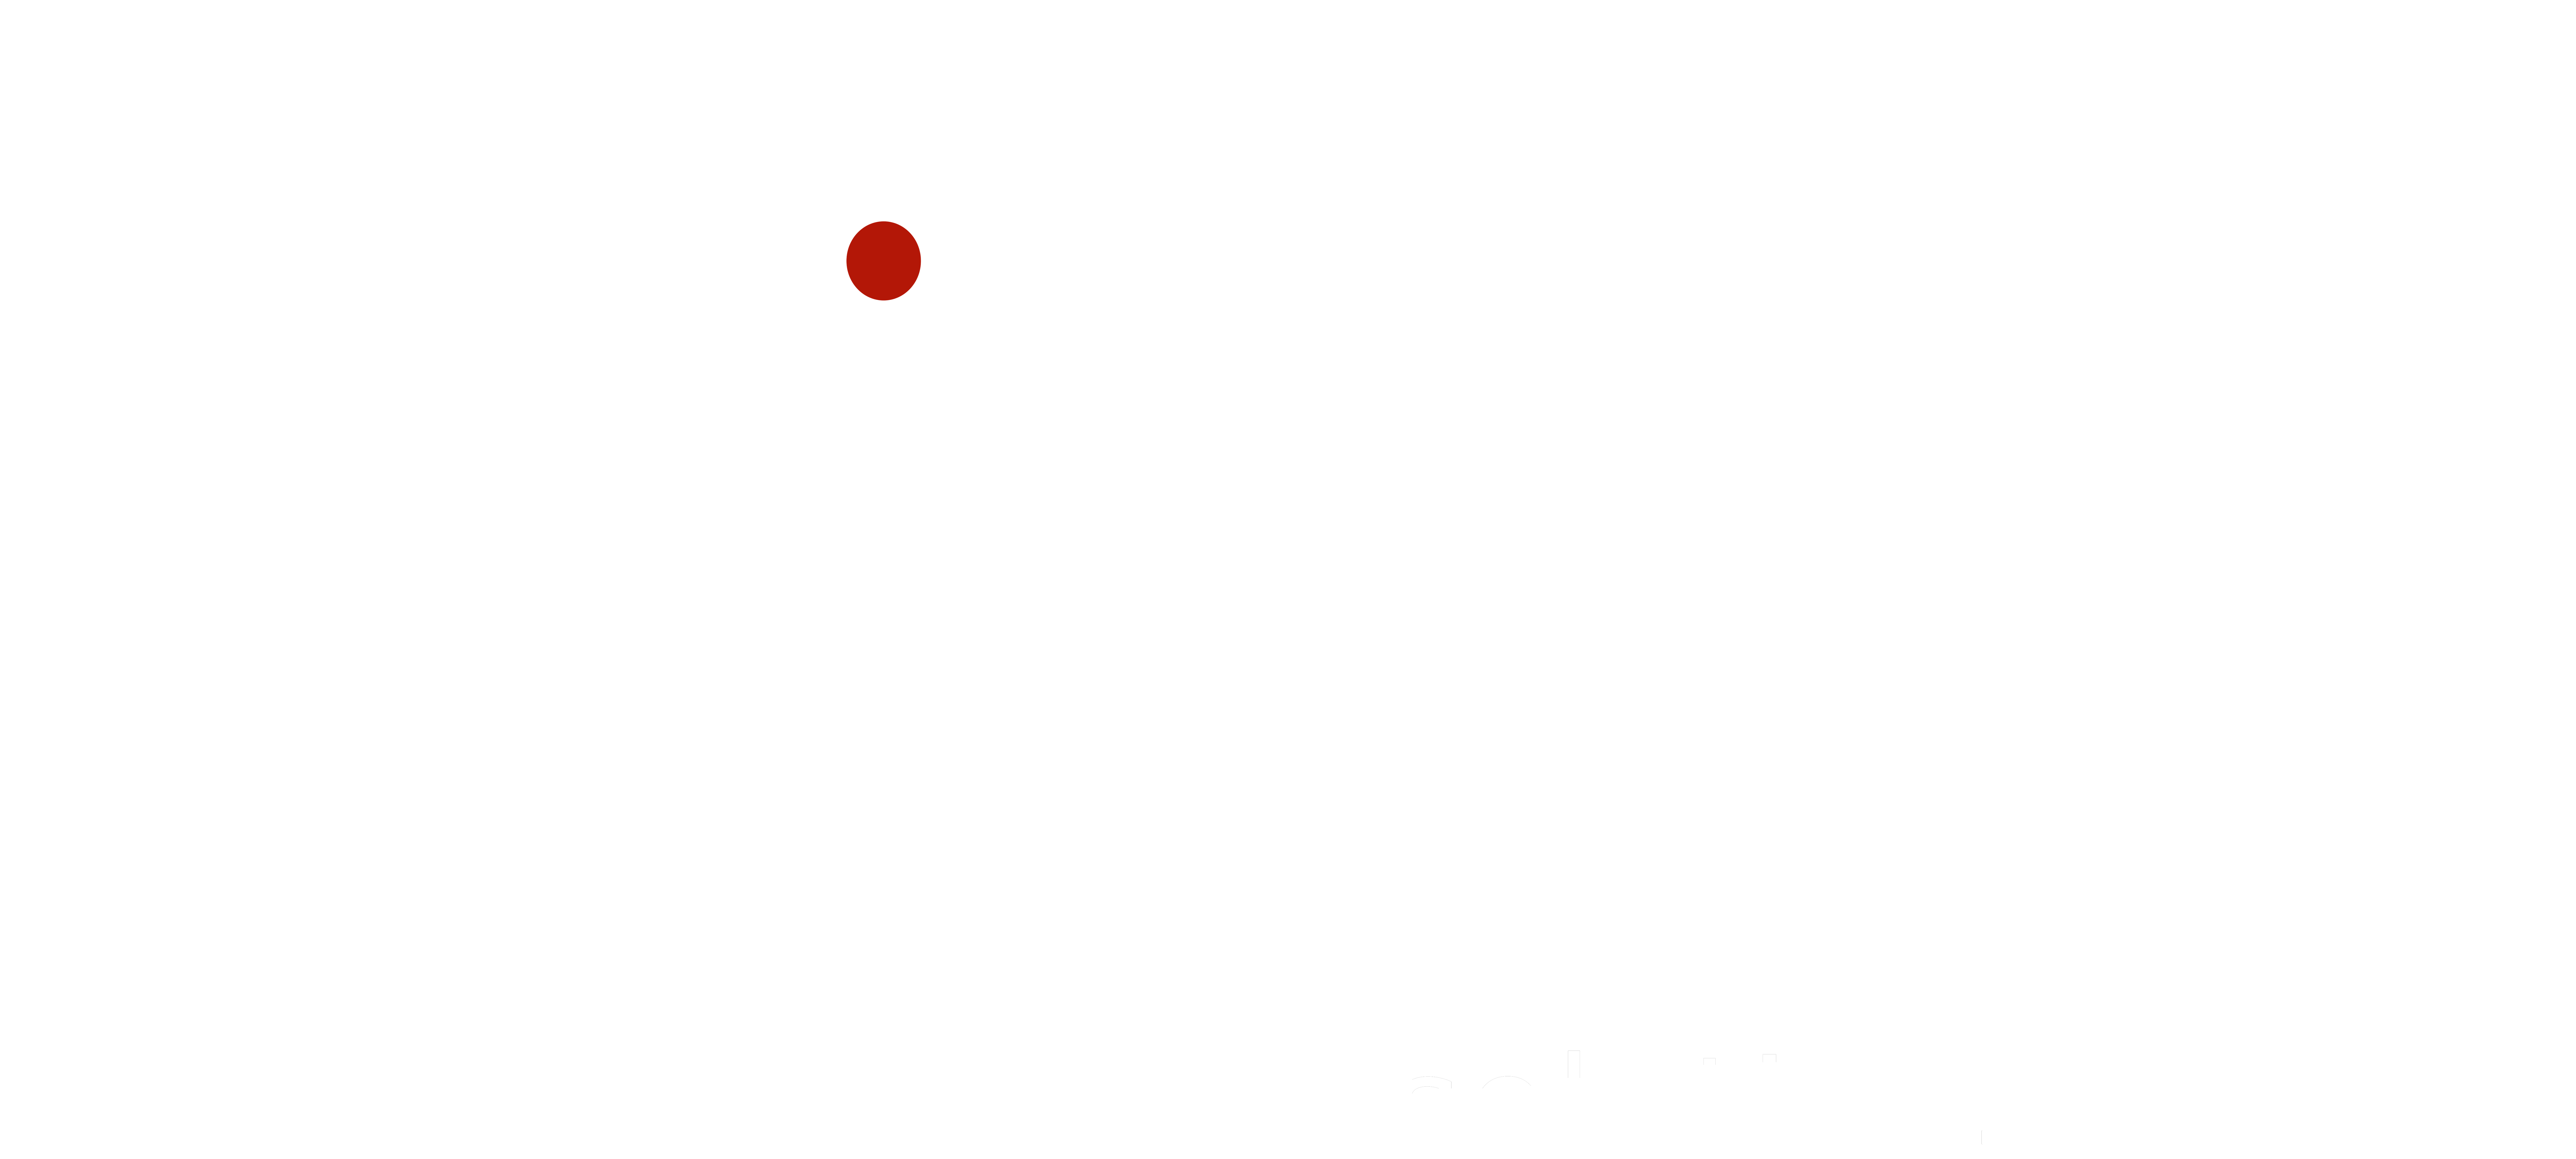 Zione Business Solutions